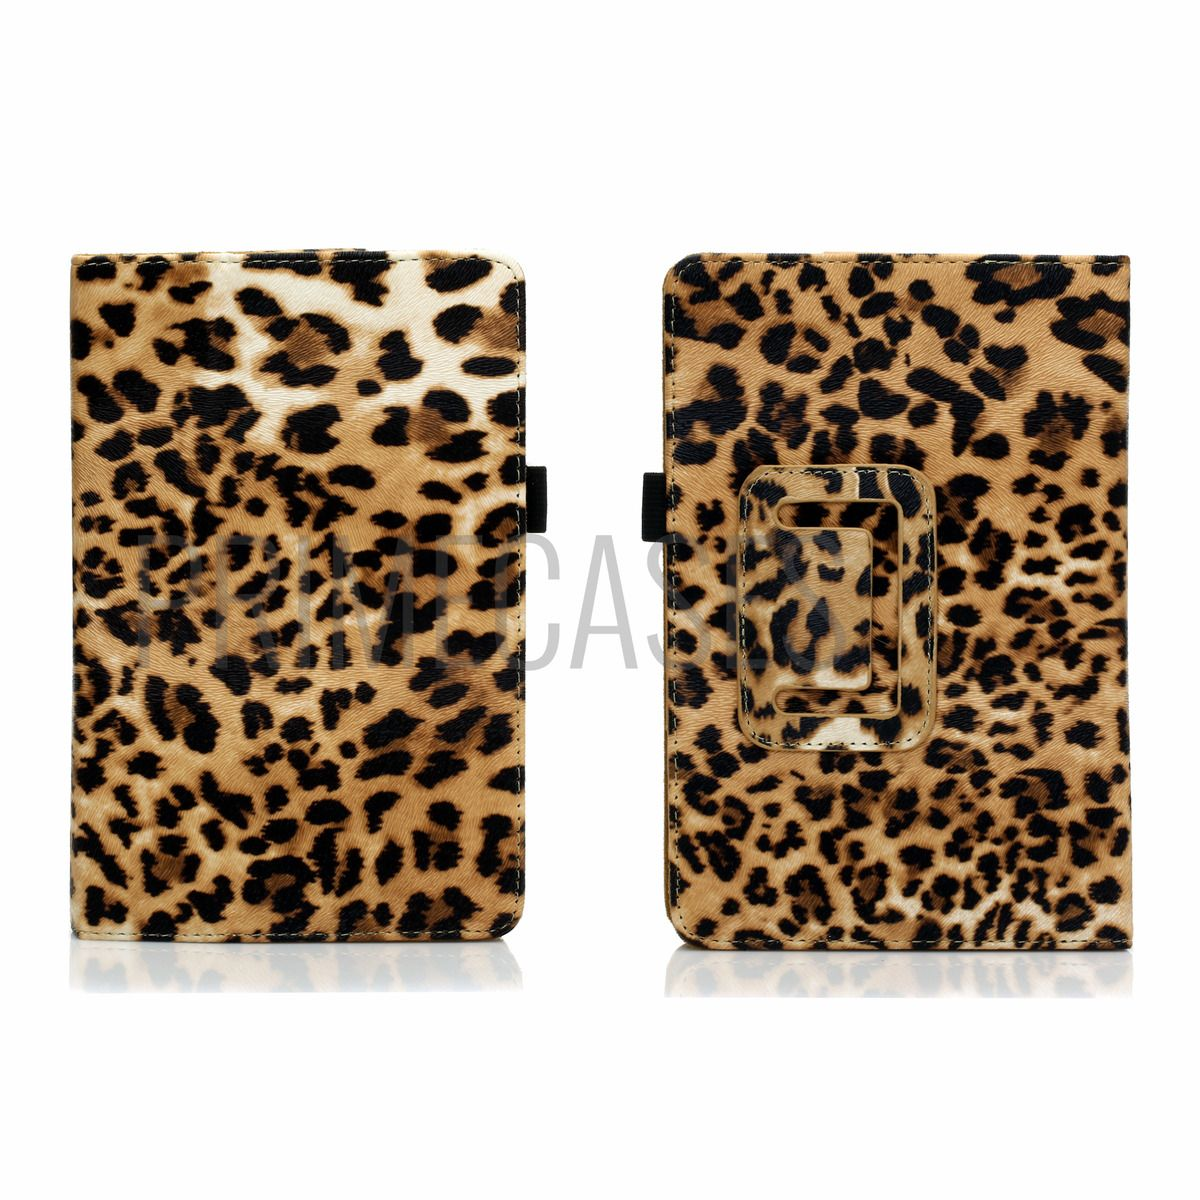 Leopard PU Leather Case Cover for Kindle Fire 7 with Screen Protector